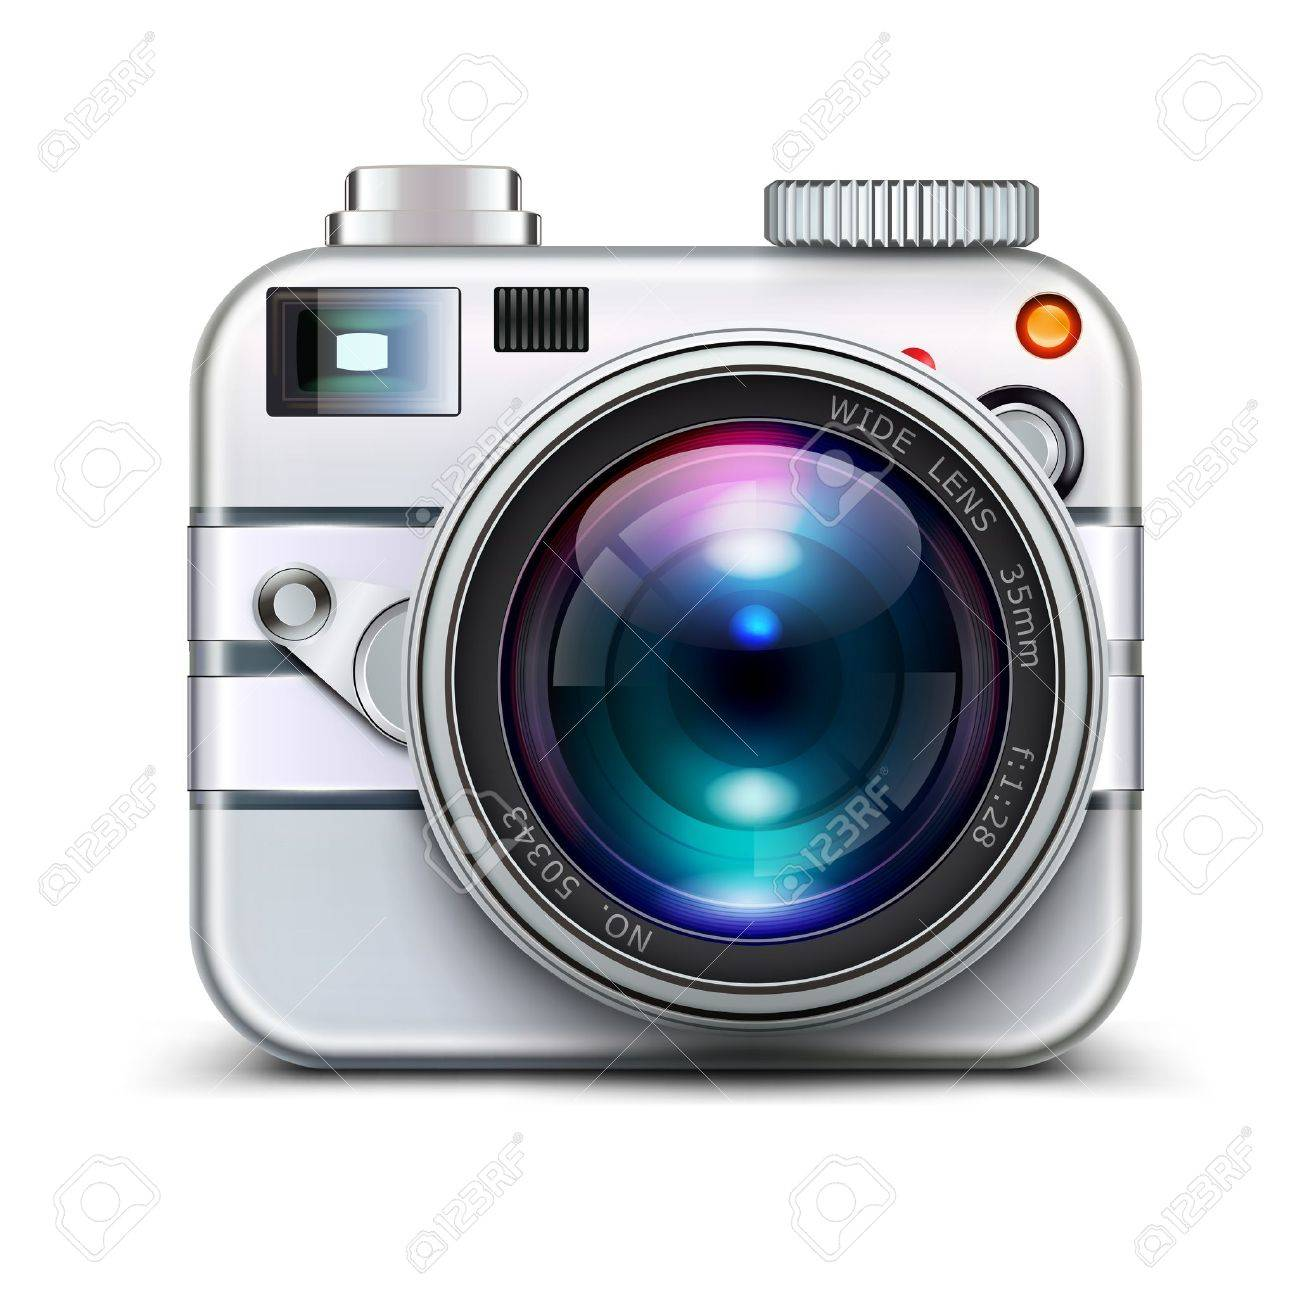 Vector illustration of detailed icon representing metal style photo camera with lens Stock Vector - 17850225